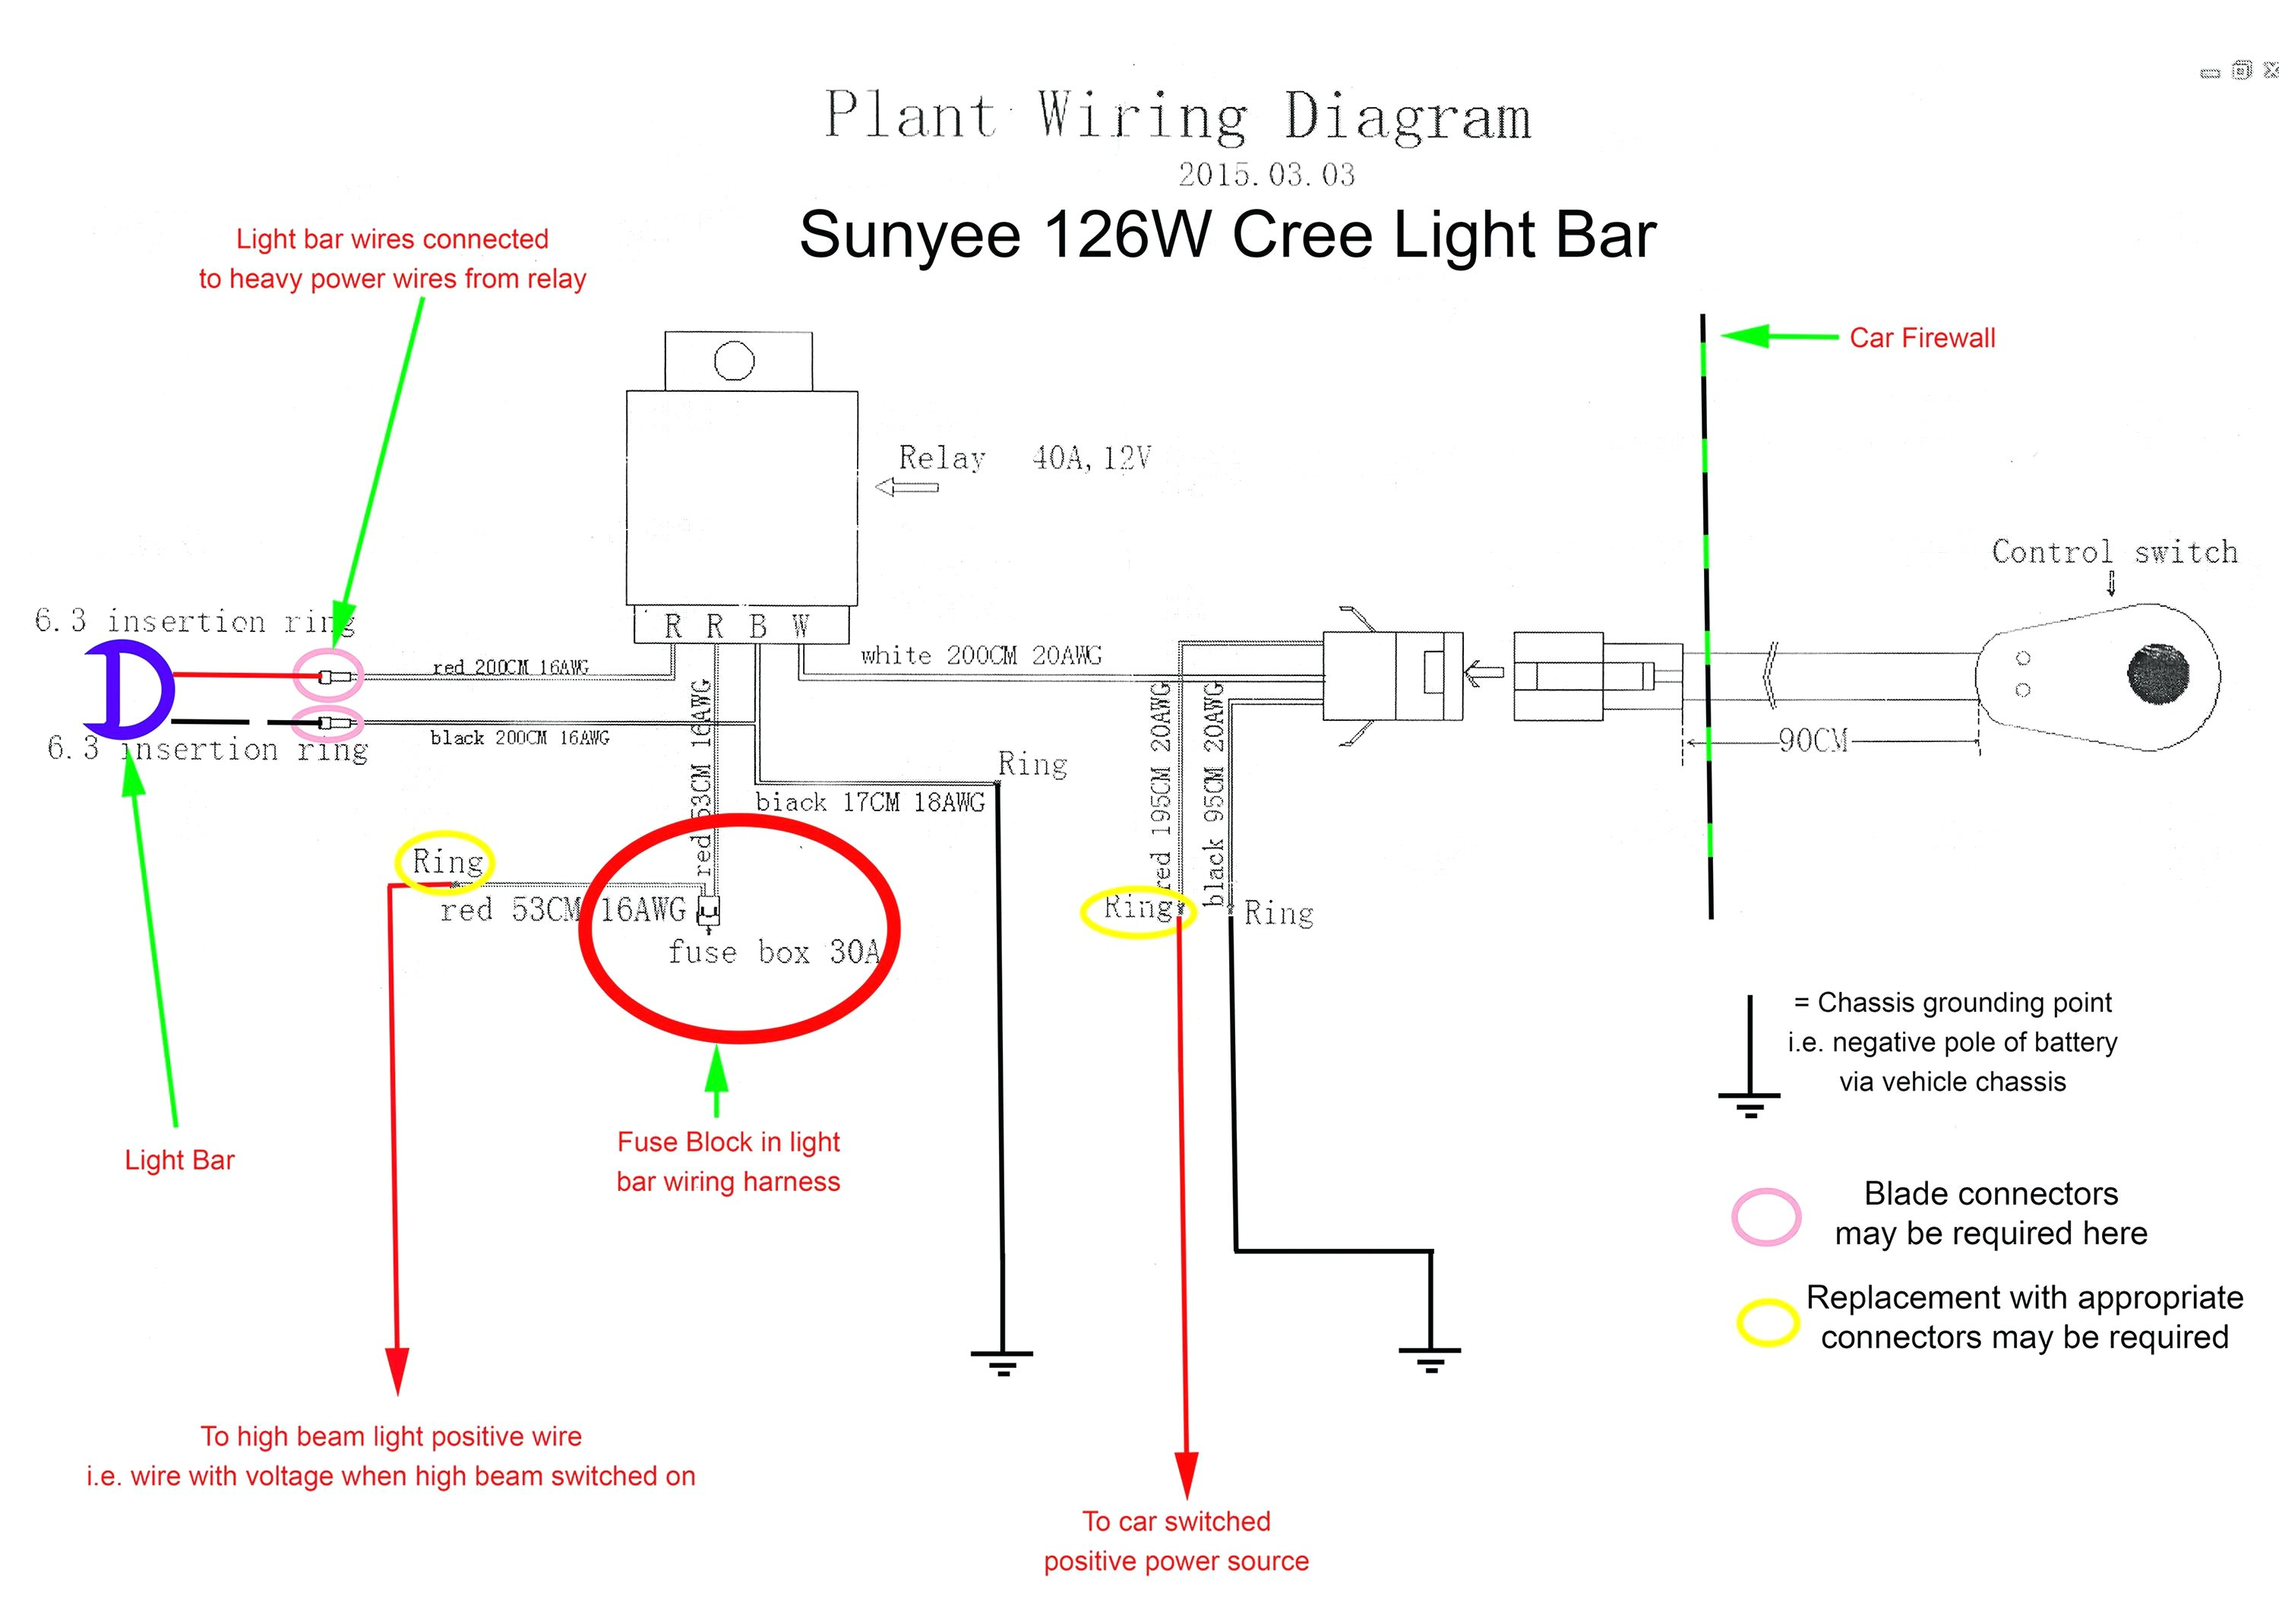 rtd pt100 3 wire wiring diagram Download-motor rtd wiring diagram new rtd wiring diagram fresh 3 wire pt100 3 wire thermocouple wiring 10-p